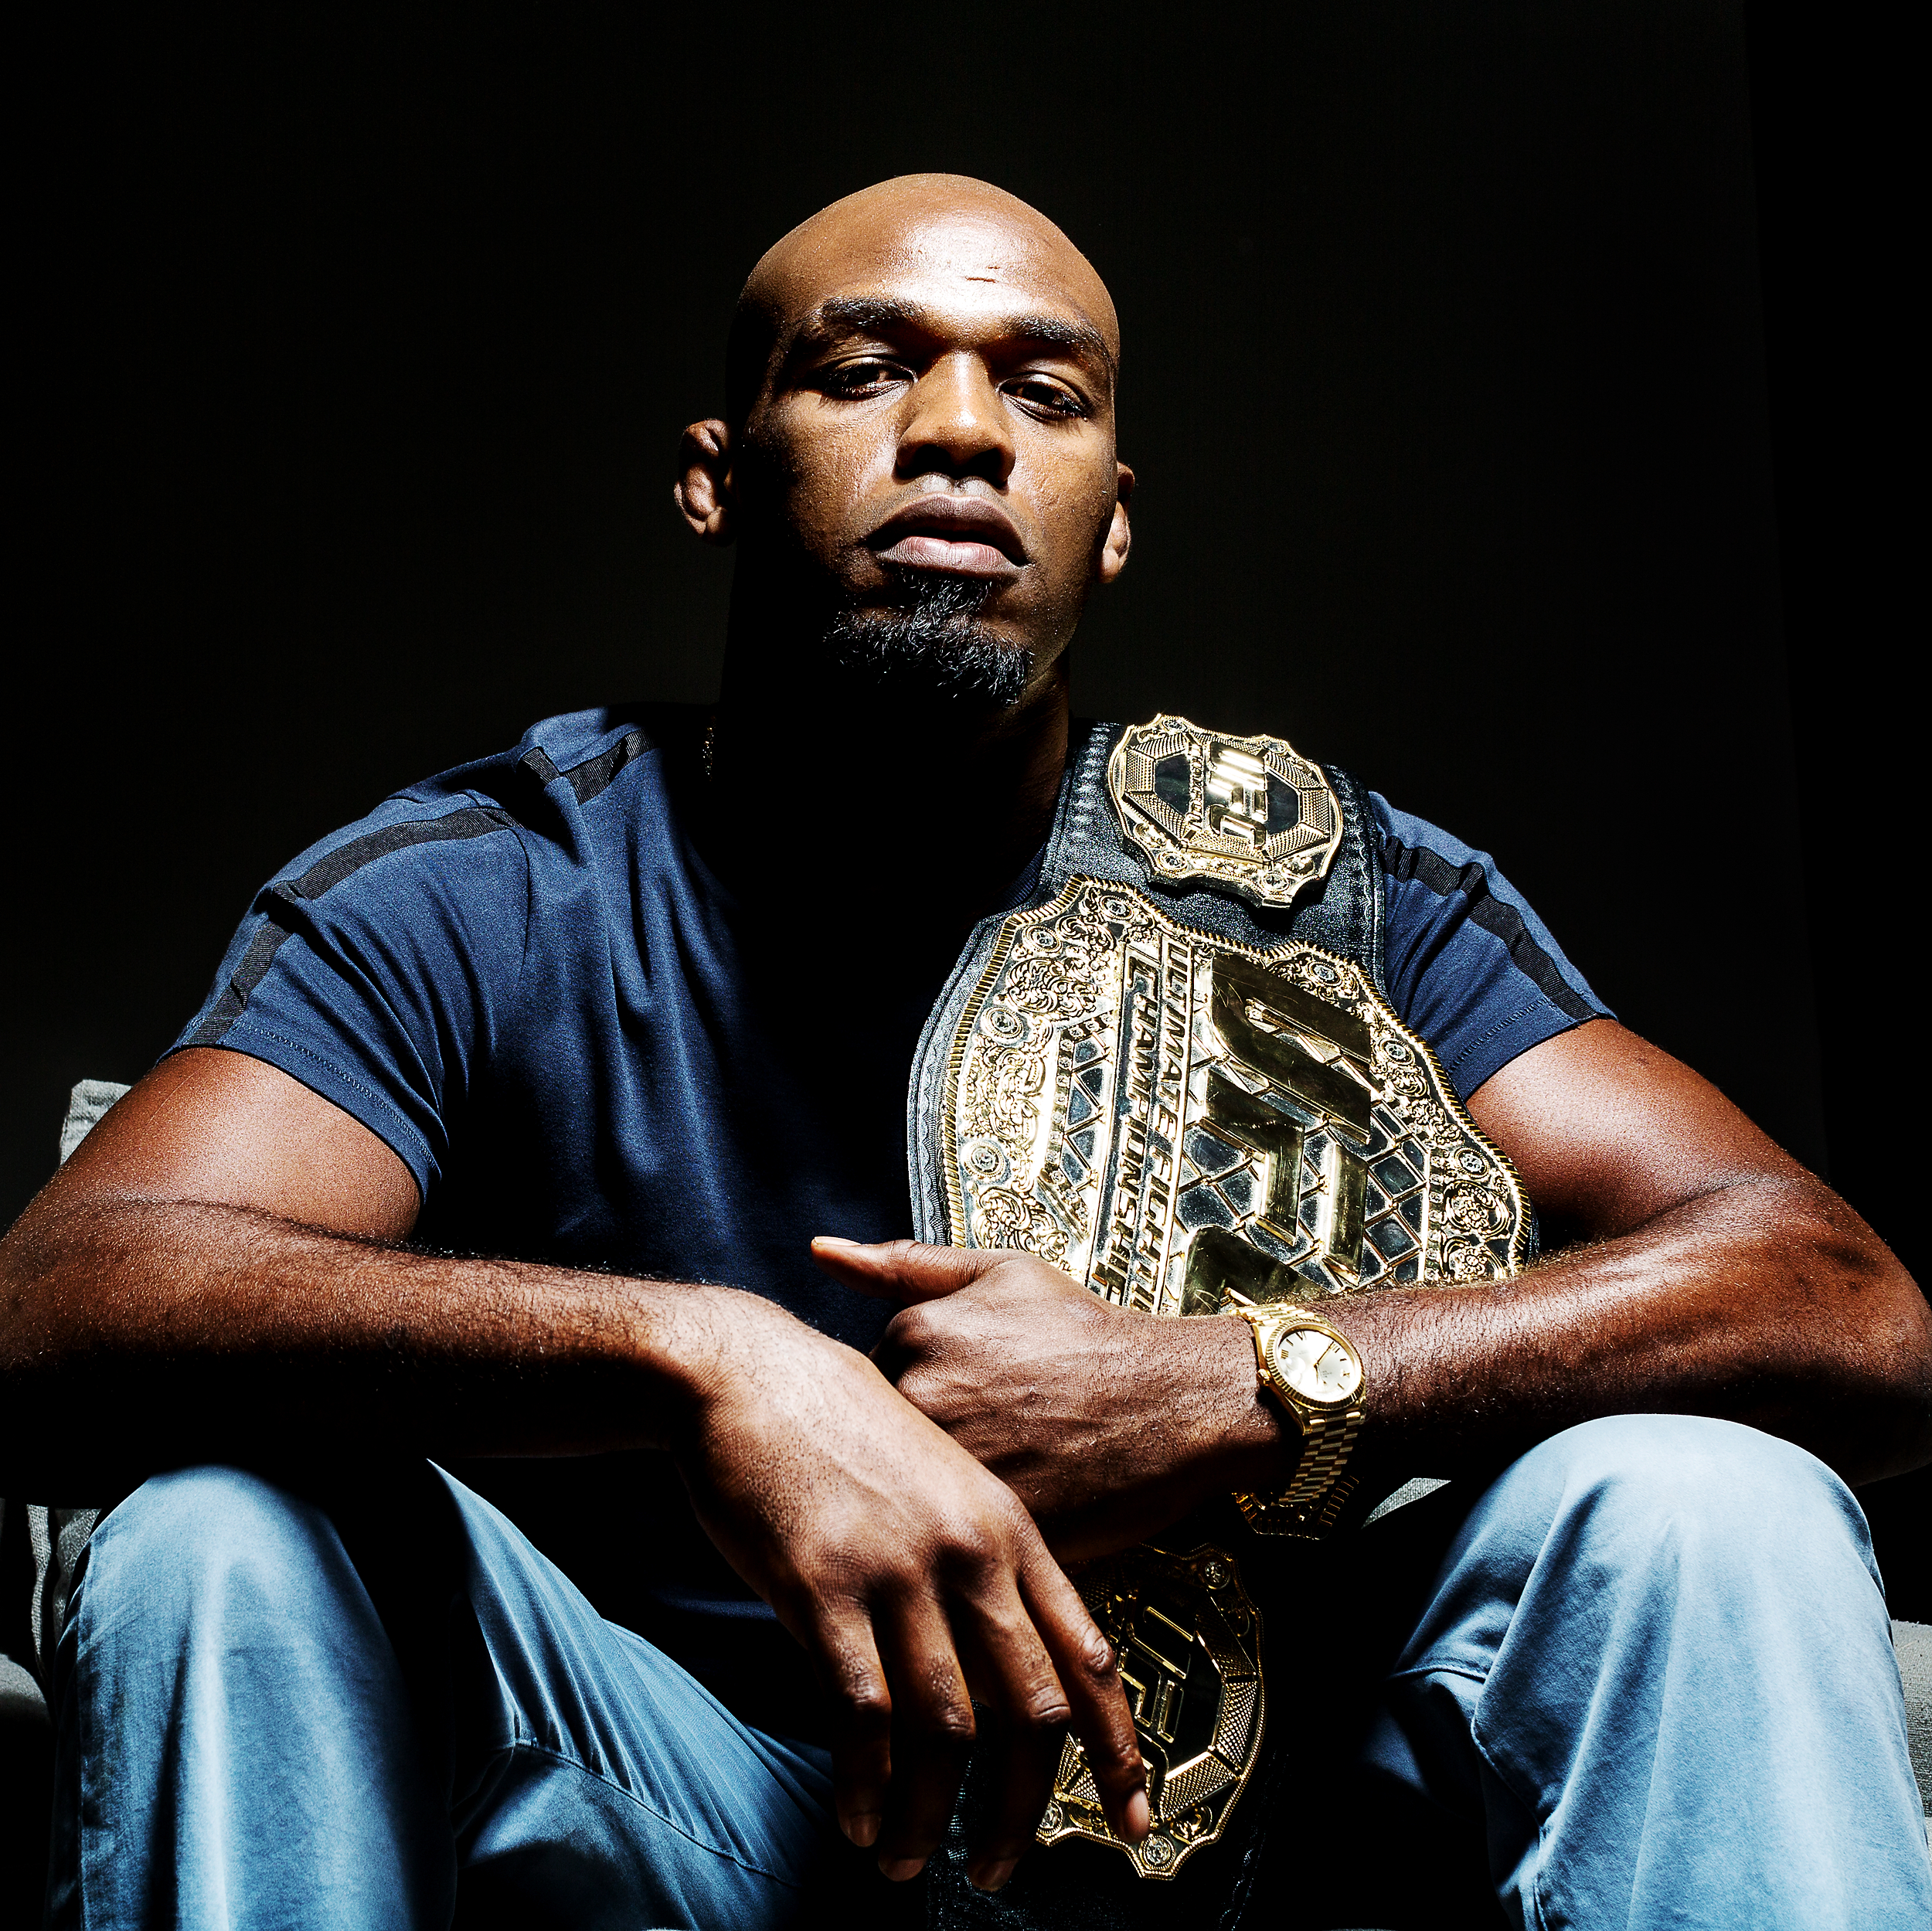 UFC Light Heavyweight Champion Jon Jones is photographed on August 7, 2017 in New York, N.Y. Jones defeated Daniel Cormier via TKO 3:01 in round three of UFC 214 on July 29, 2017 to regain the UFC Light Heavyweight Championship. (Photo by Bryan Bennett/The Players' Tribune)